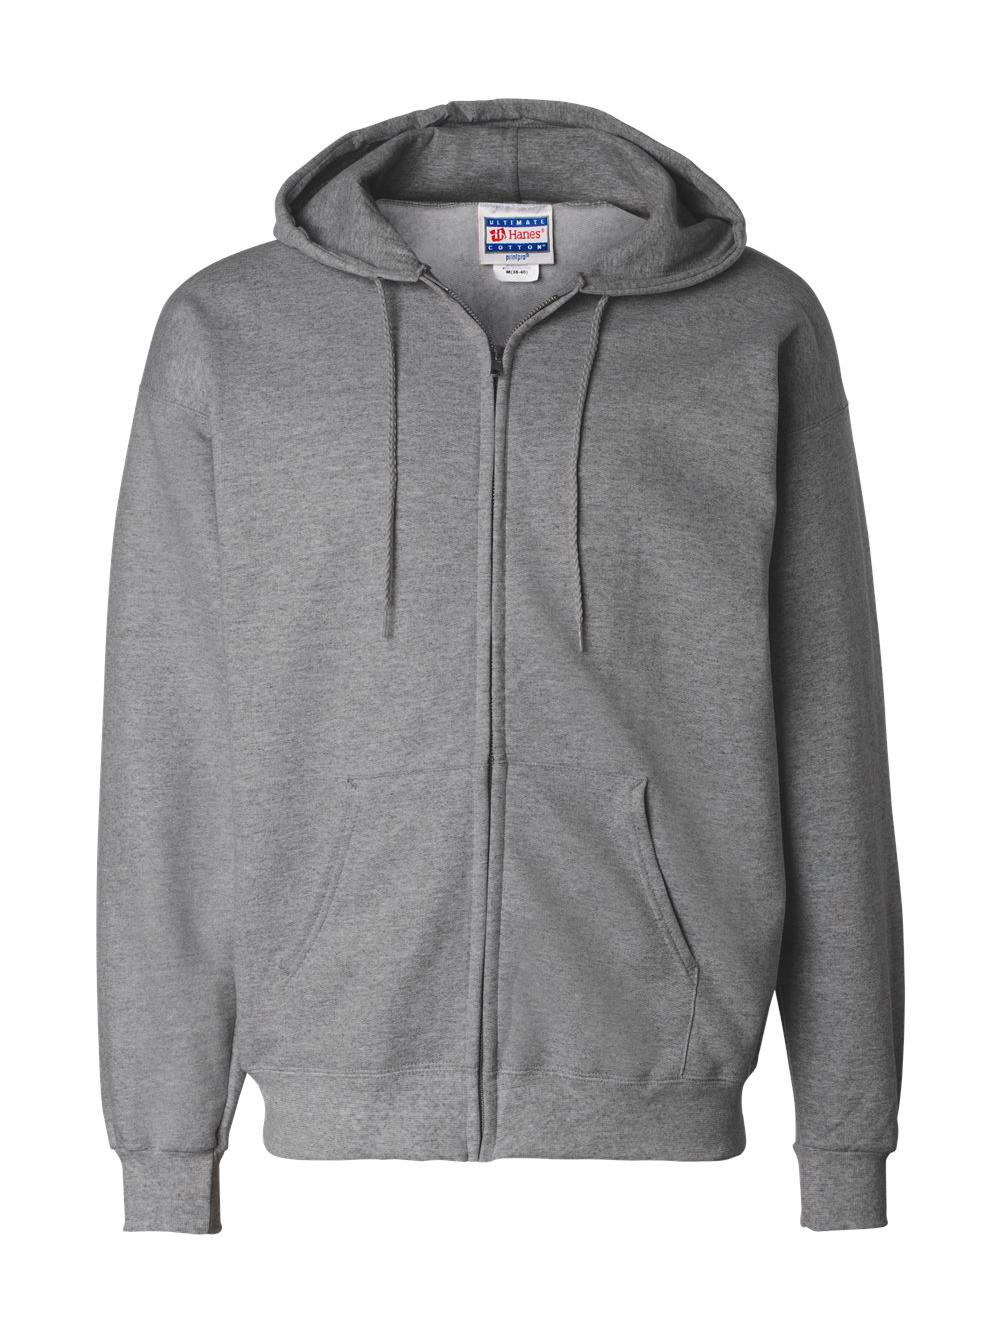 Hanes-Ultimate-Cotton-Full-Zip-Hooded-Sweatshirt-F280 thumbnail 18